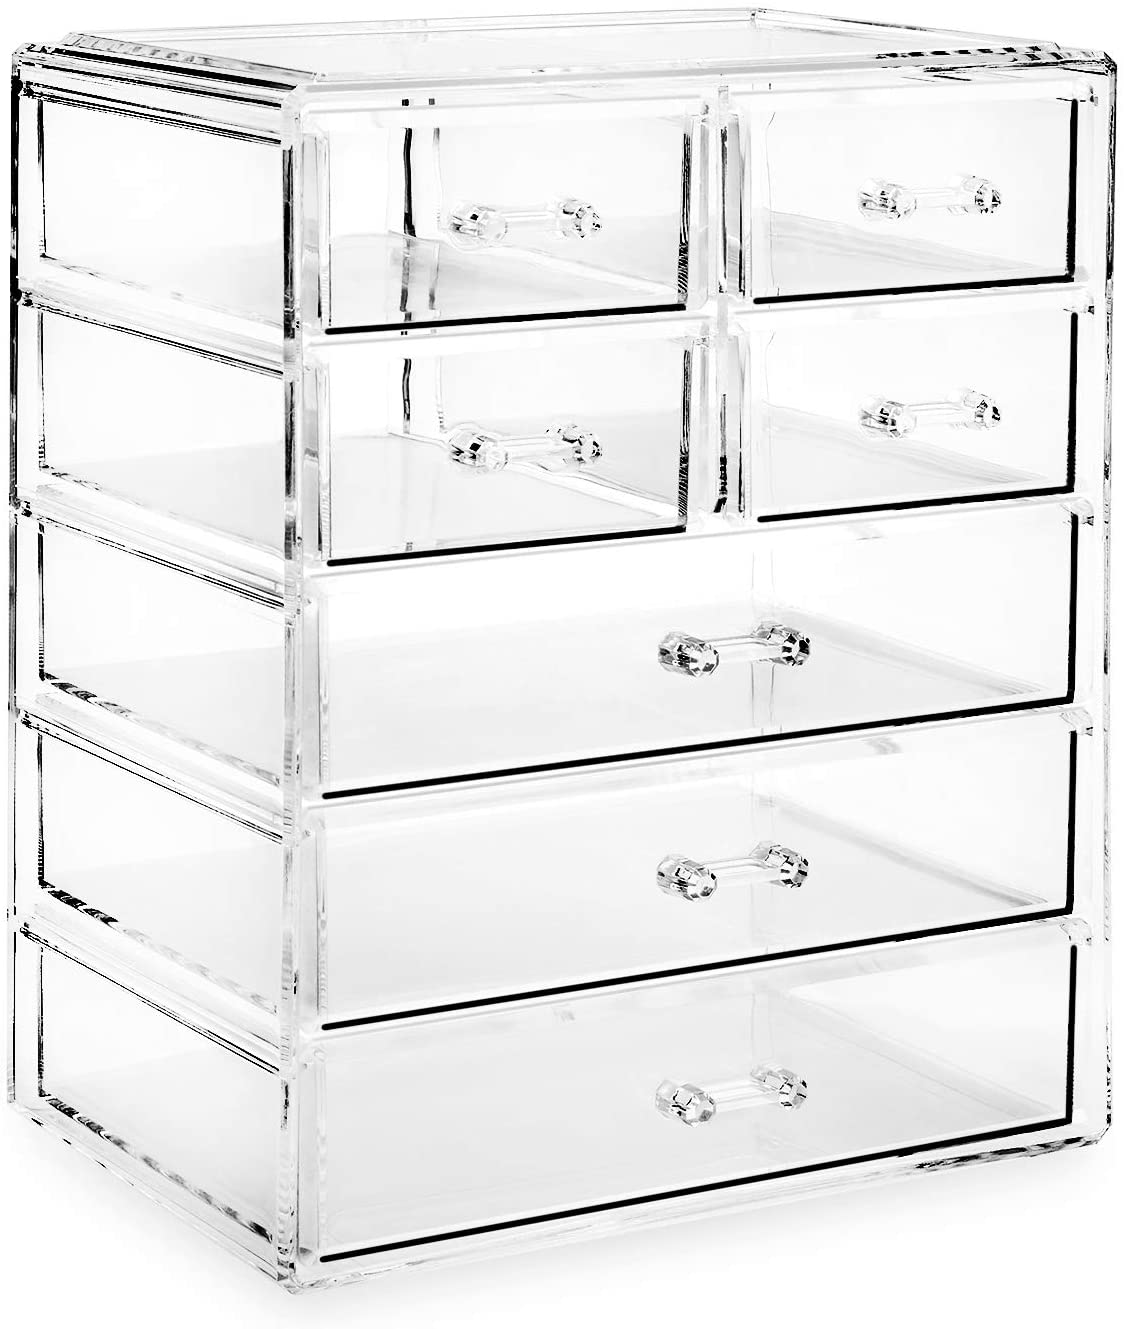 Casafield Acrylic Cosmetic Makeup Organizer & Jewelry Storage Display Case - 3 Large, 4 Small Drawer Set - Clear